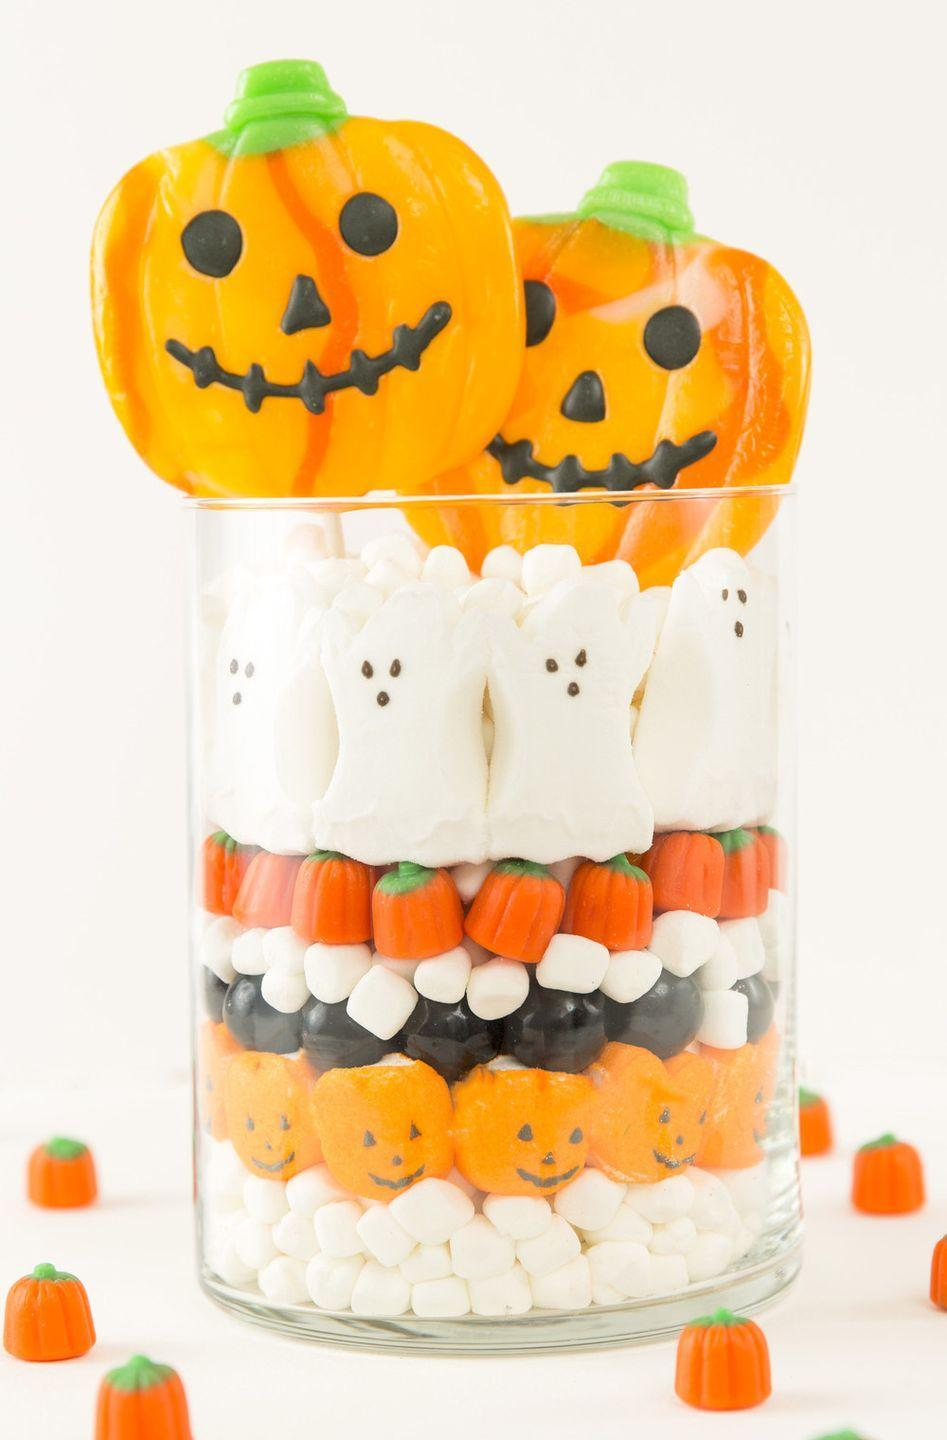 """<p>Put all that candy to good use by stacking the festive treats inside a clear container. <br></p><p><strong>Get the tutorial at <a href=""""http://www.lily-the-wandering-gypsy.com/new-blog/2015/10/20/a-halloween-party-with-skype"""" rel=""""nofollow noopener"""" target=""""_blank"""" data-ylk=""""slk:Lily the Wandering Gypsy"""" class=""""link rapid-noclick-resp"""">Lily the Wandering Gypsy</a>.</strong></p><p><a class=""""link rapid-noclick-resp"""" href=""""https://www.amazon.com/Royal-Imports-Decorative-Centerpiece-Cylinder/dp/B01MTKK8RN/?tag=syn-yahoo-20&ascsubtag=%5Bartid%7C10050.g.3739%5Bsrc%7Cyahoo-us"""" rel=""""nofollow noopener"""" target=""""_blank"""" data-ylk=""""slk:SHOP GLASS CYLINDER VASE"""">SHOP GLASS CYLINDER VASE</a> </p>"""